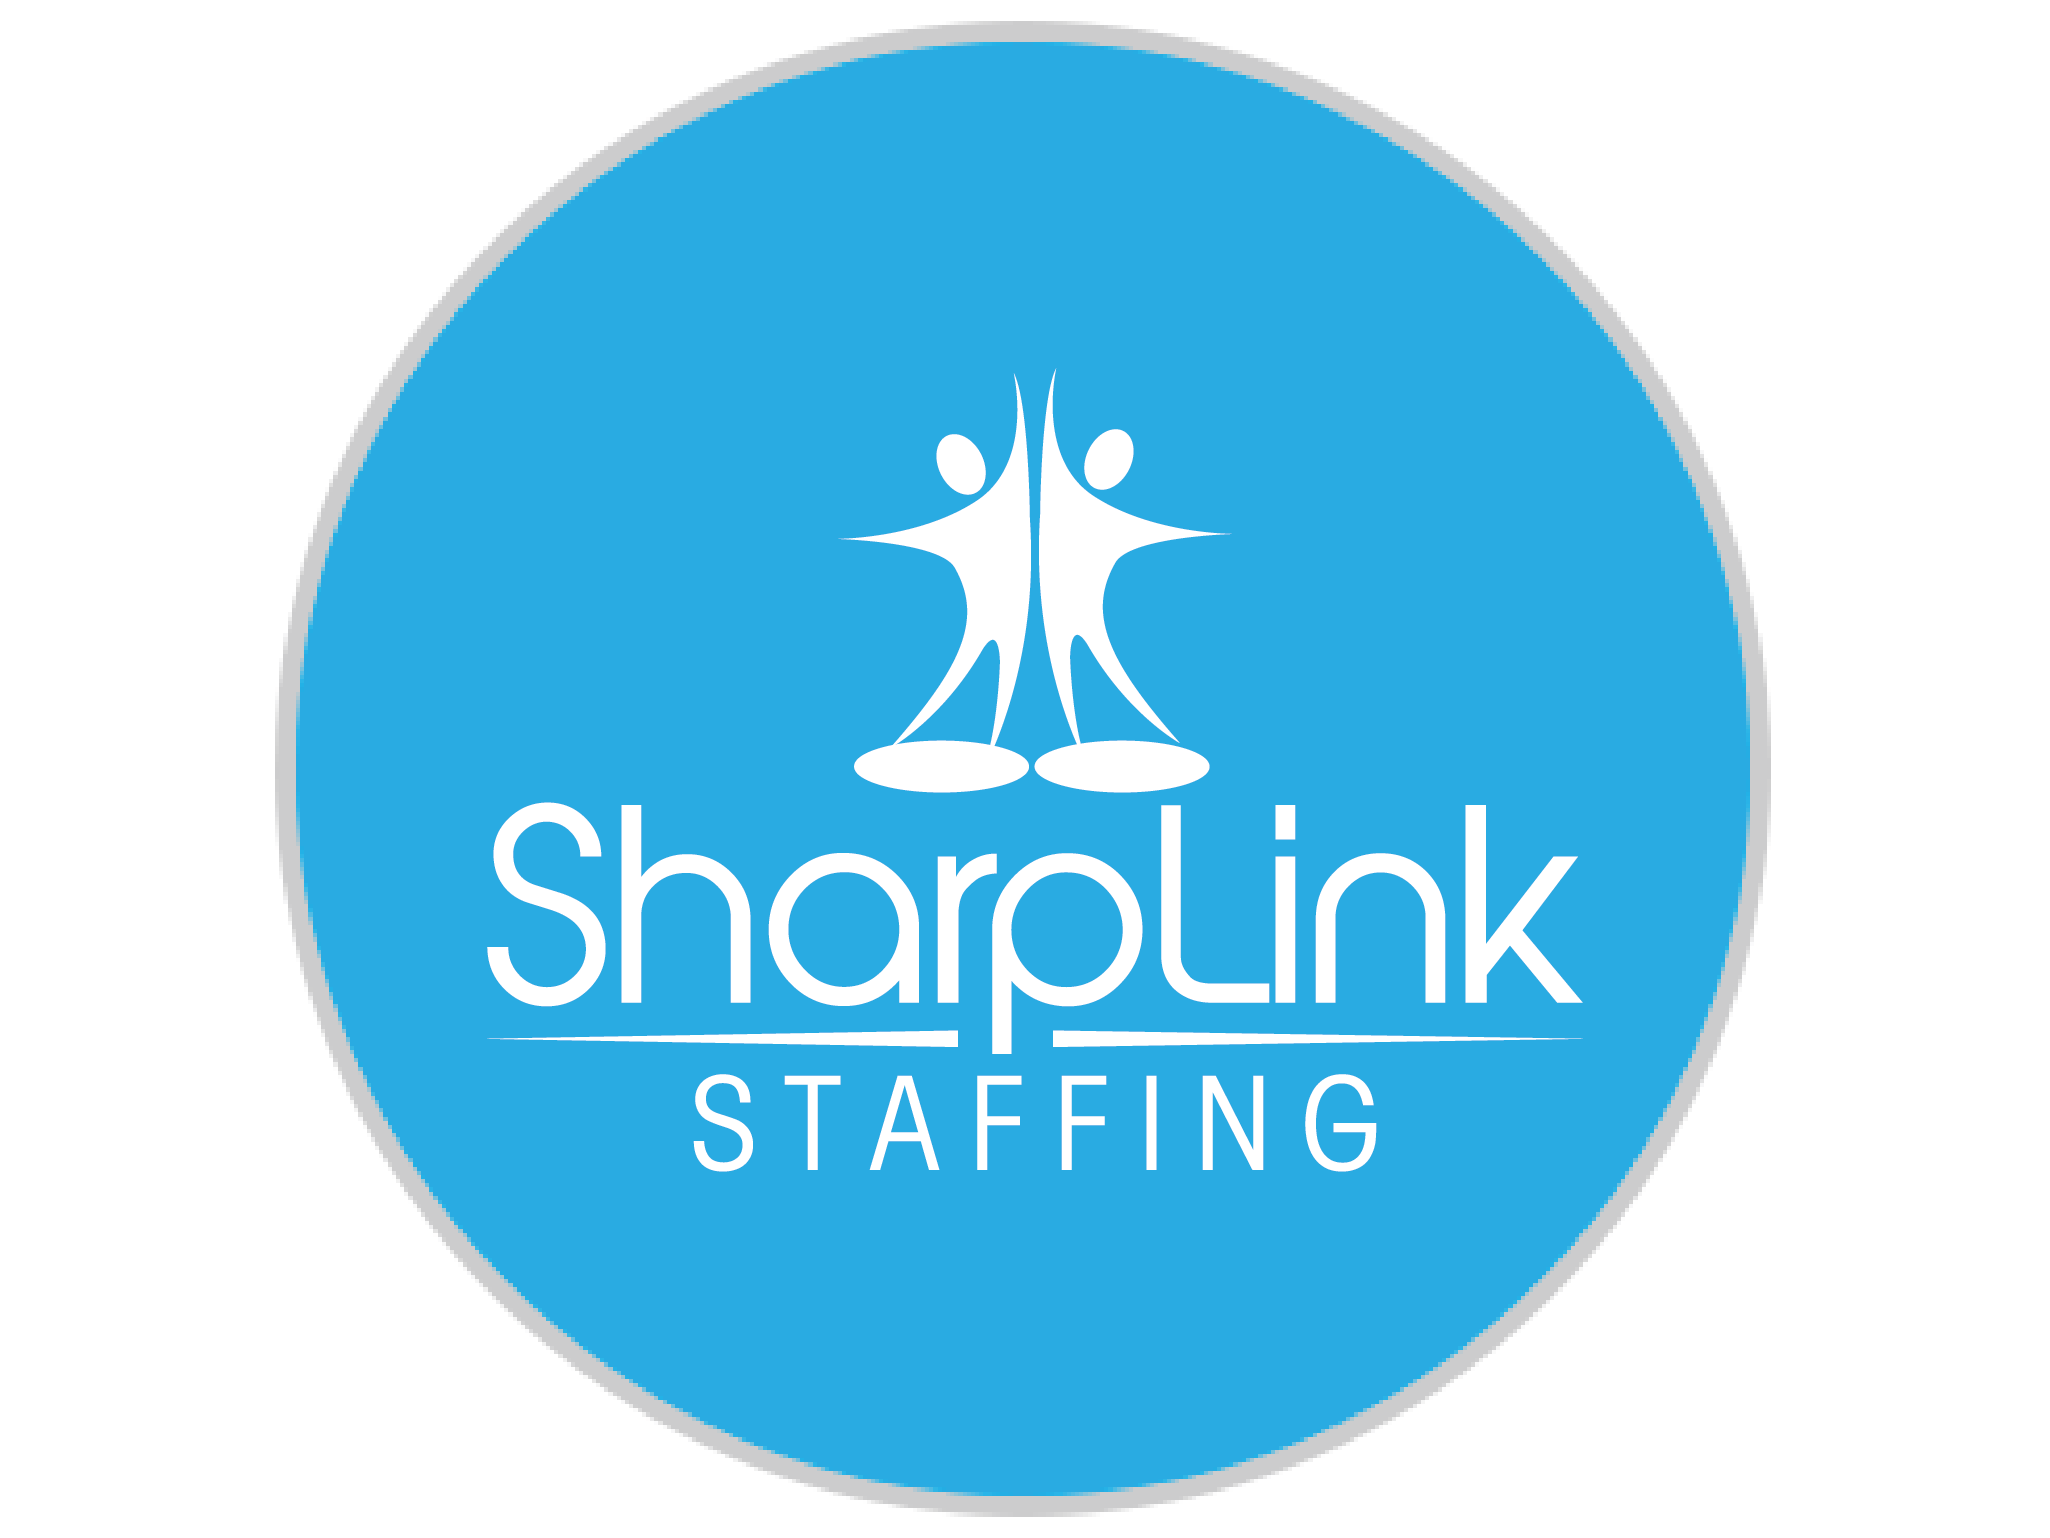 Sharplink_White_Logos